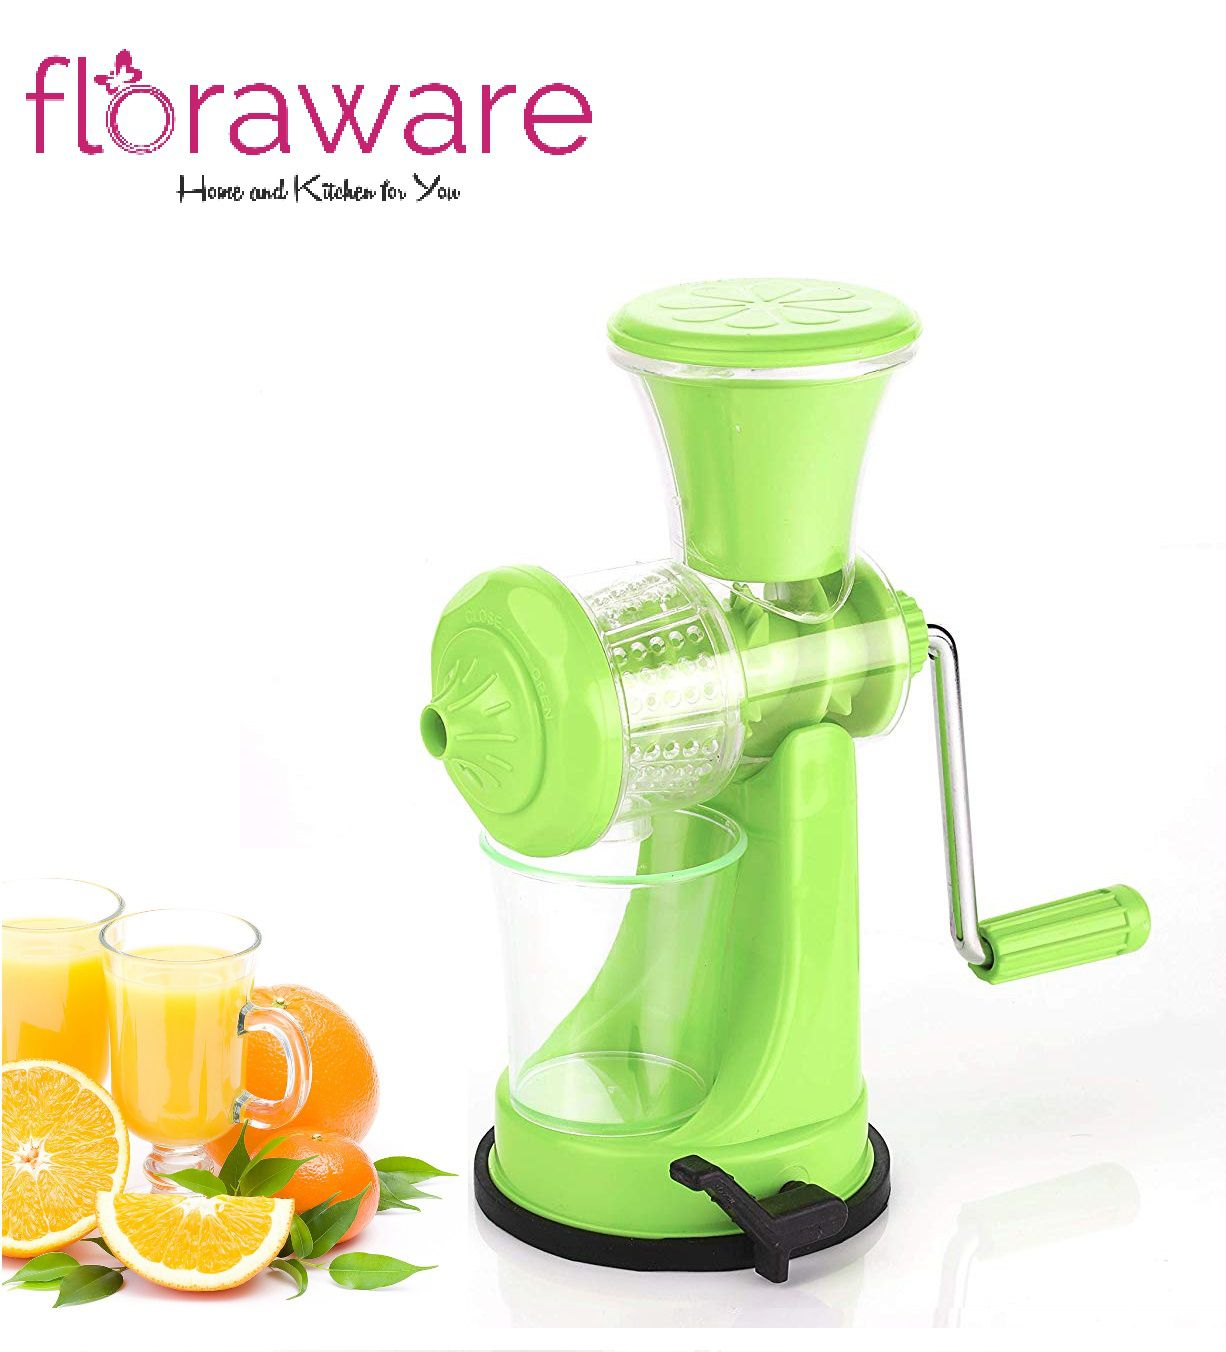 Floraware Light Green Manual Juicer